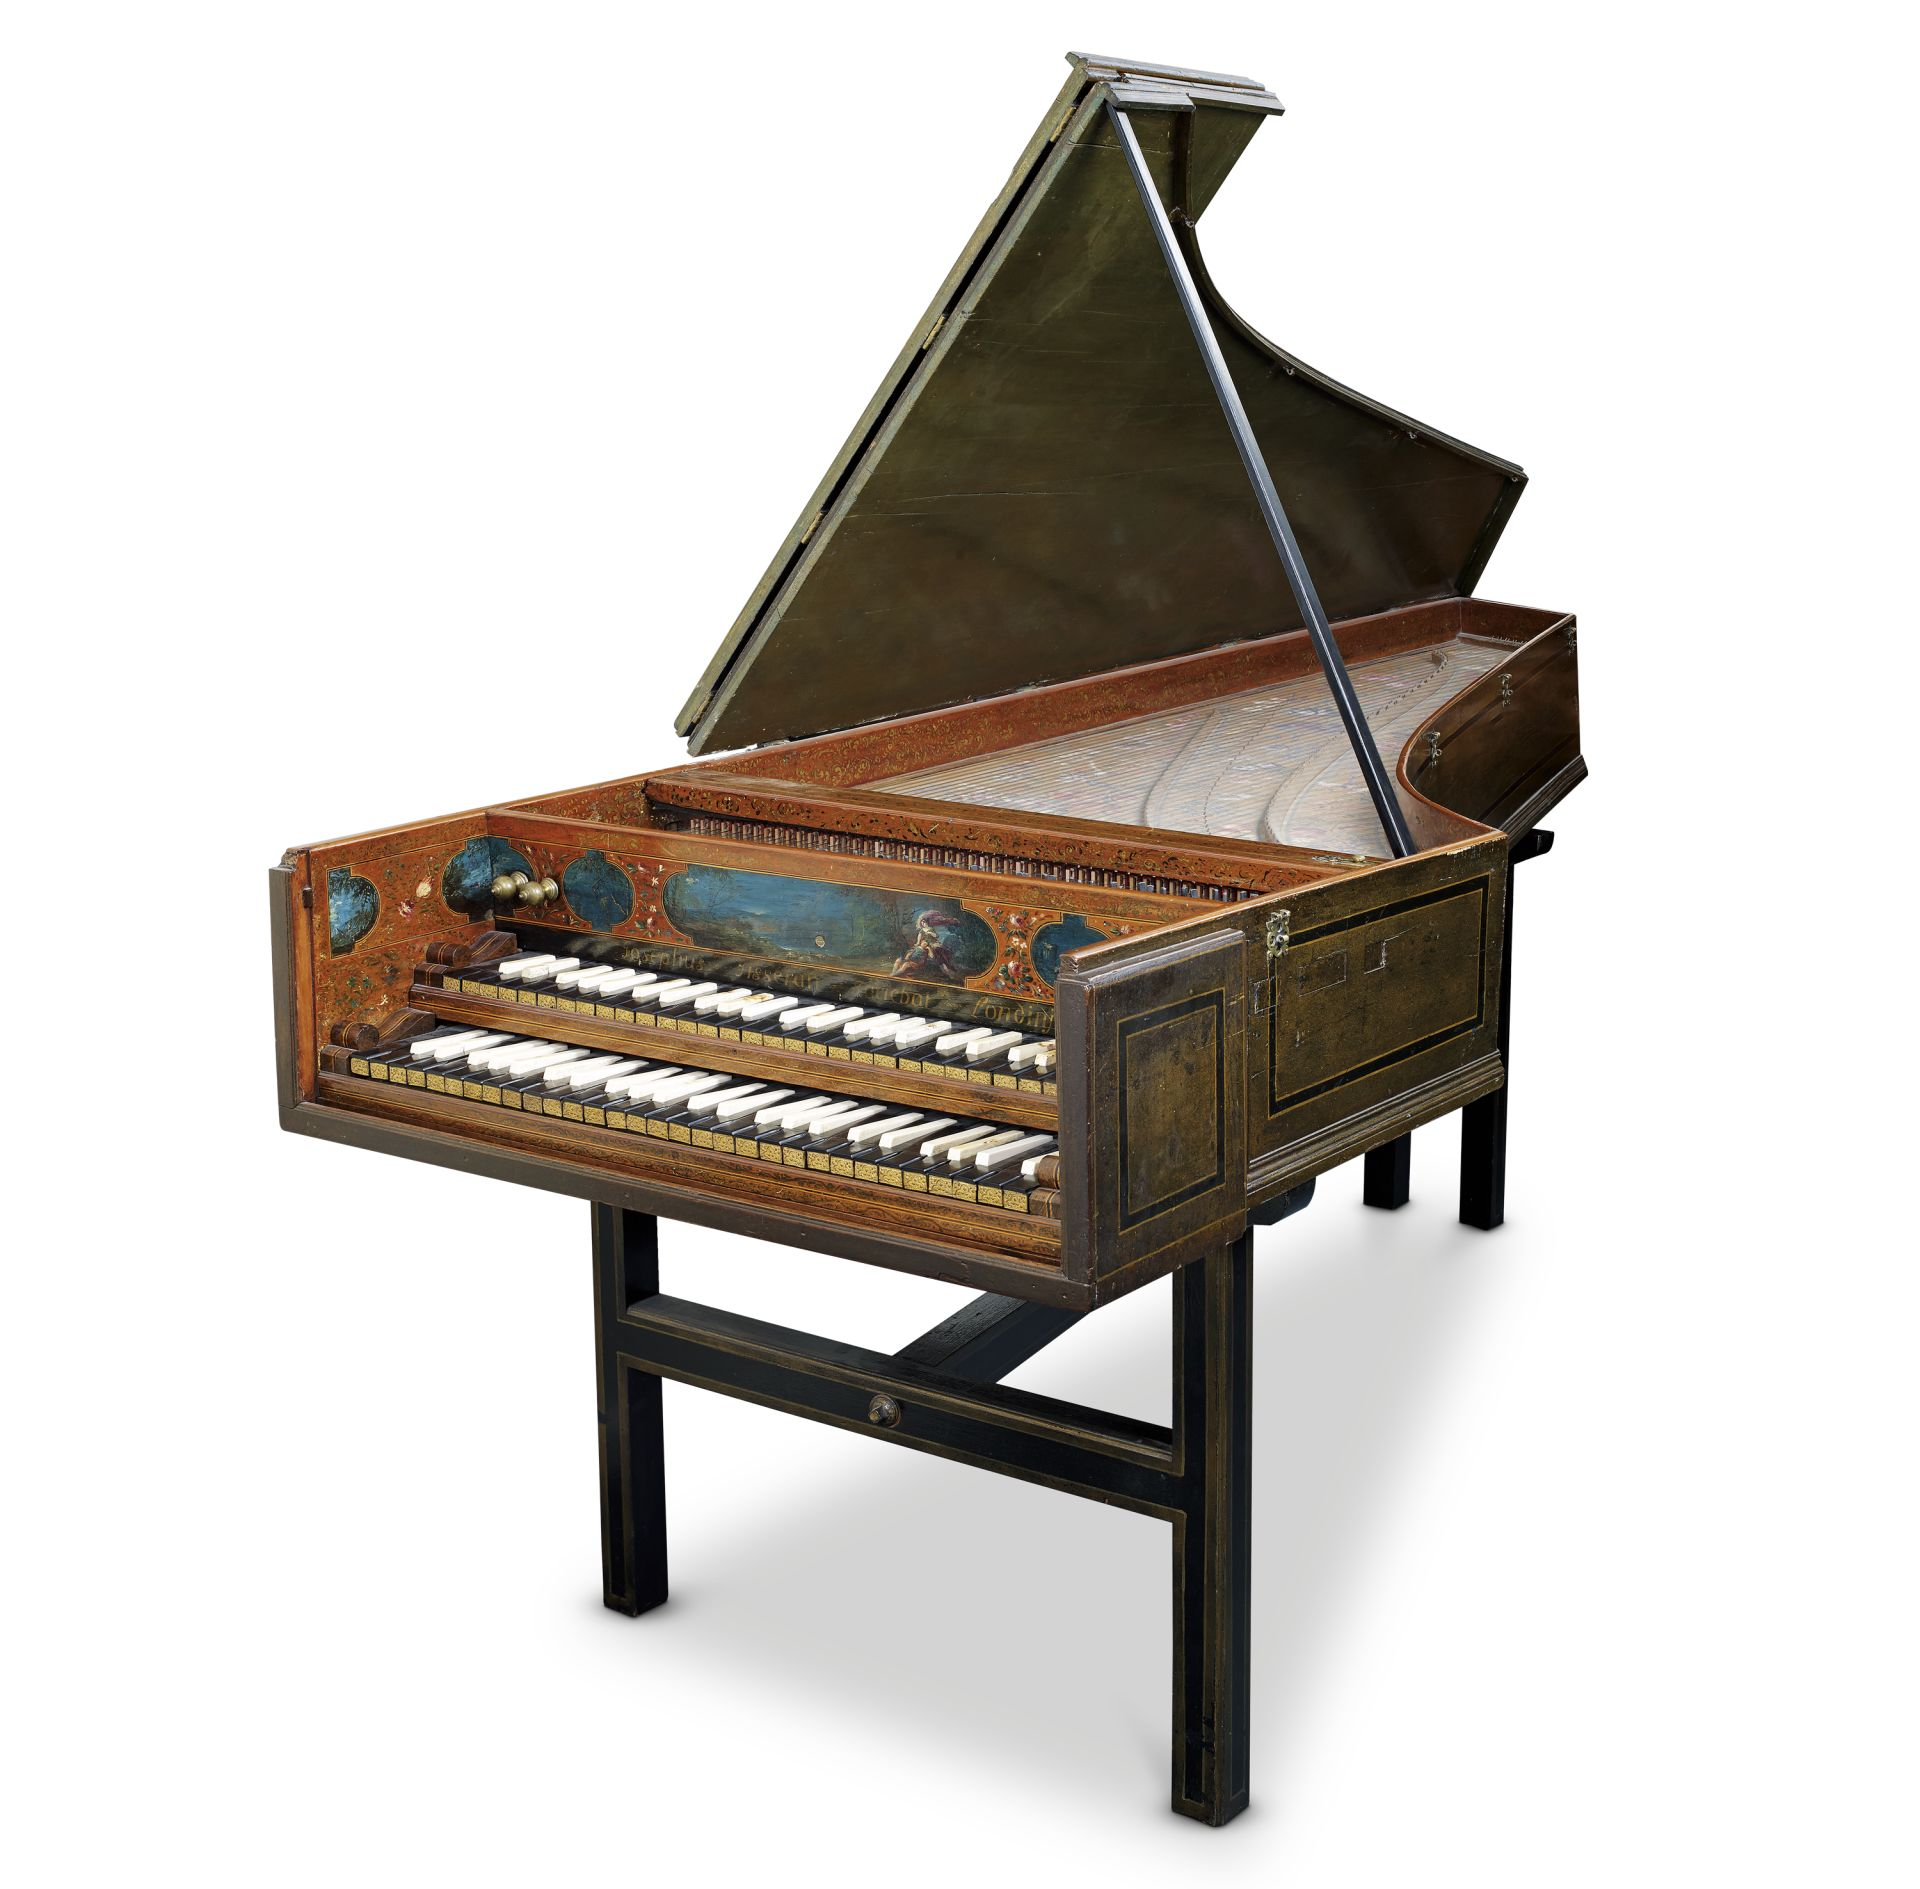 Harpsichord Facts | What Is A Harpsichord | DK Find Out